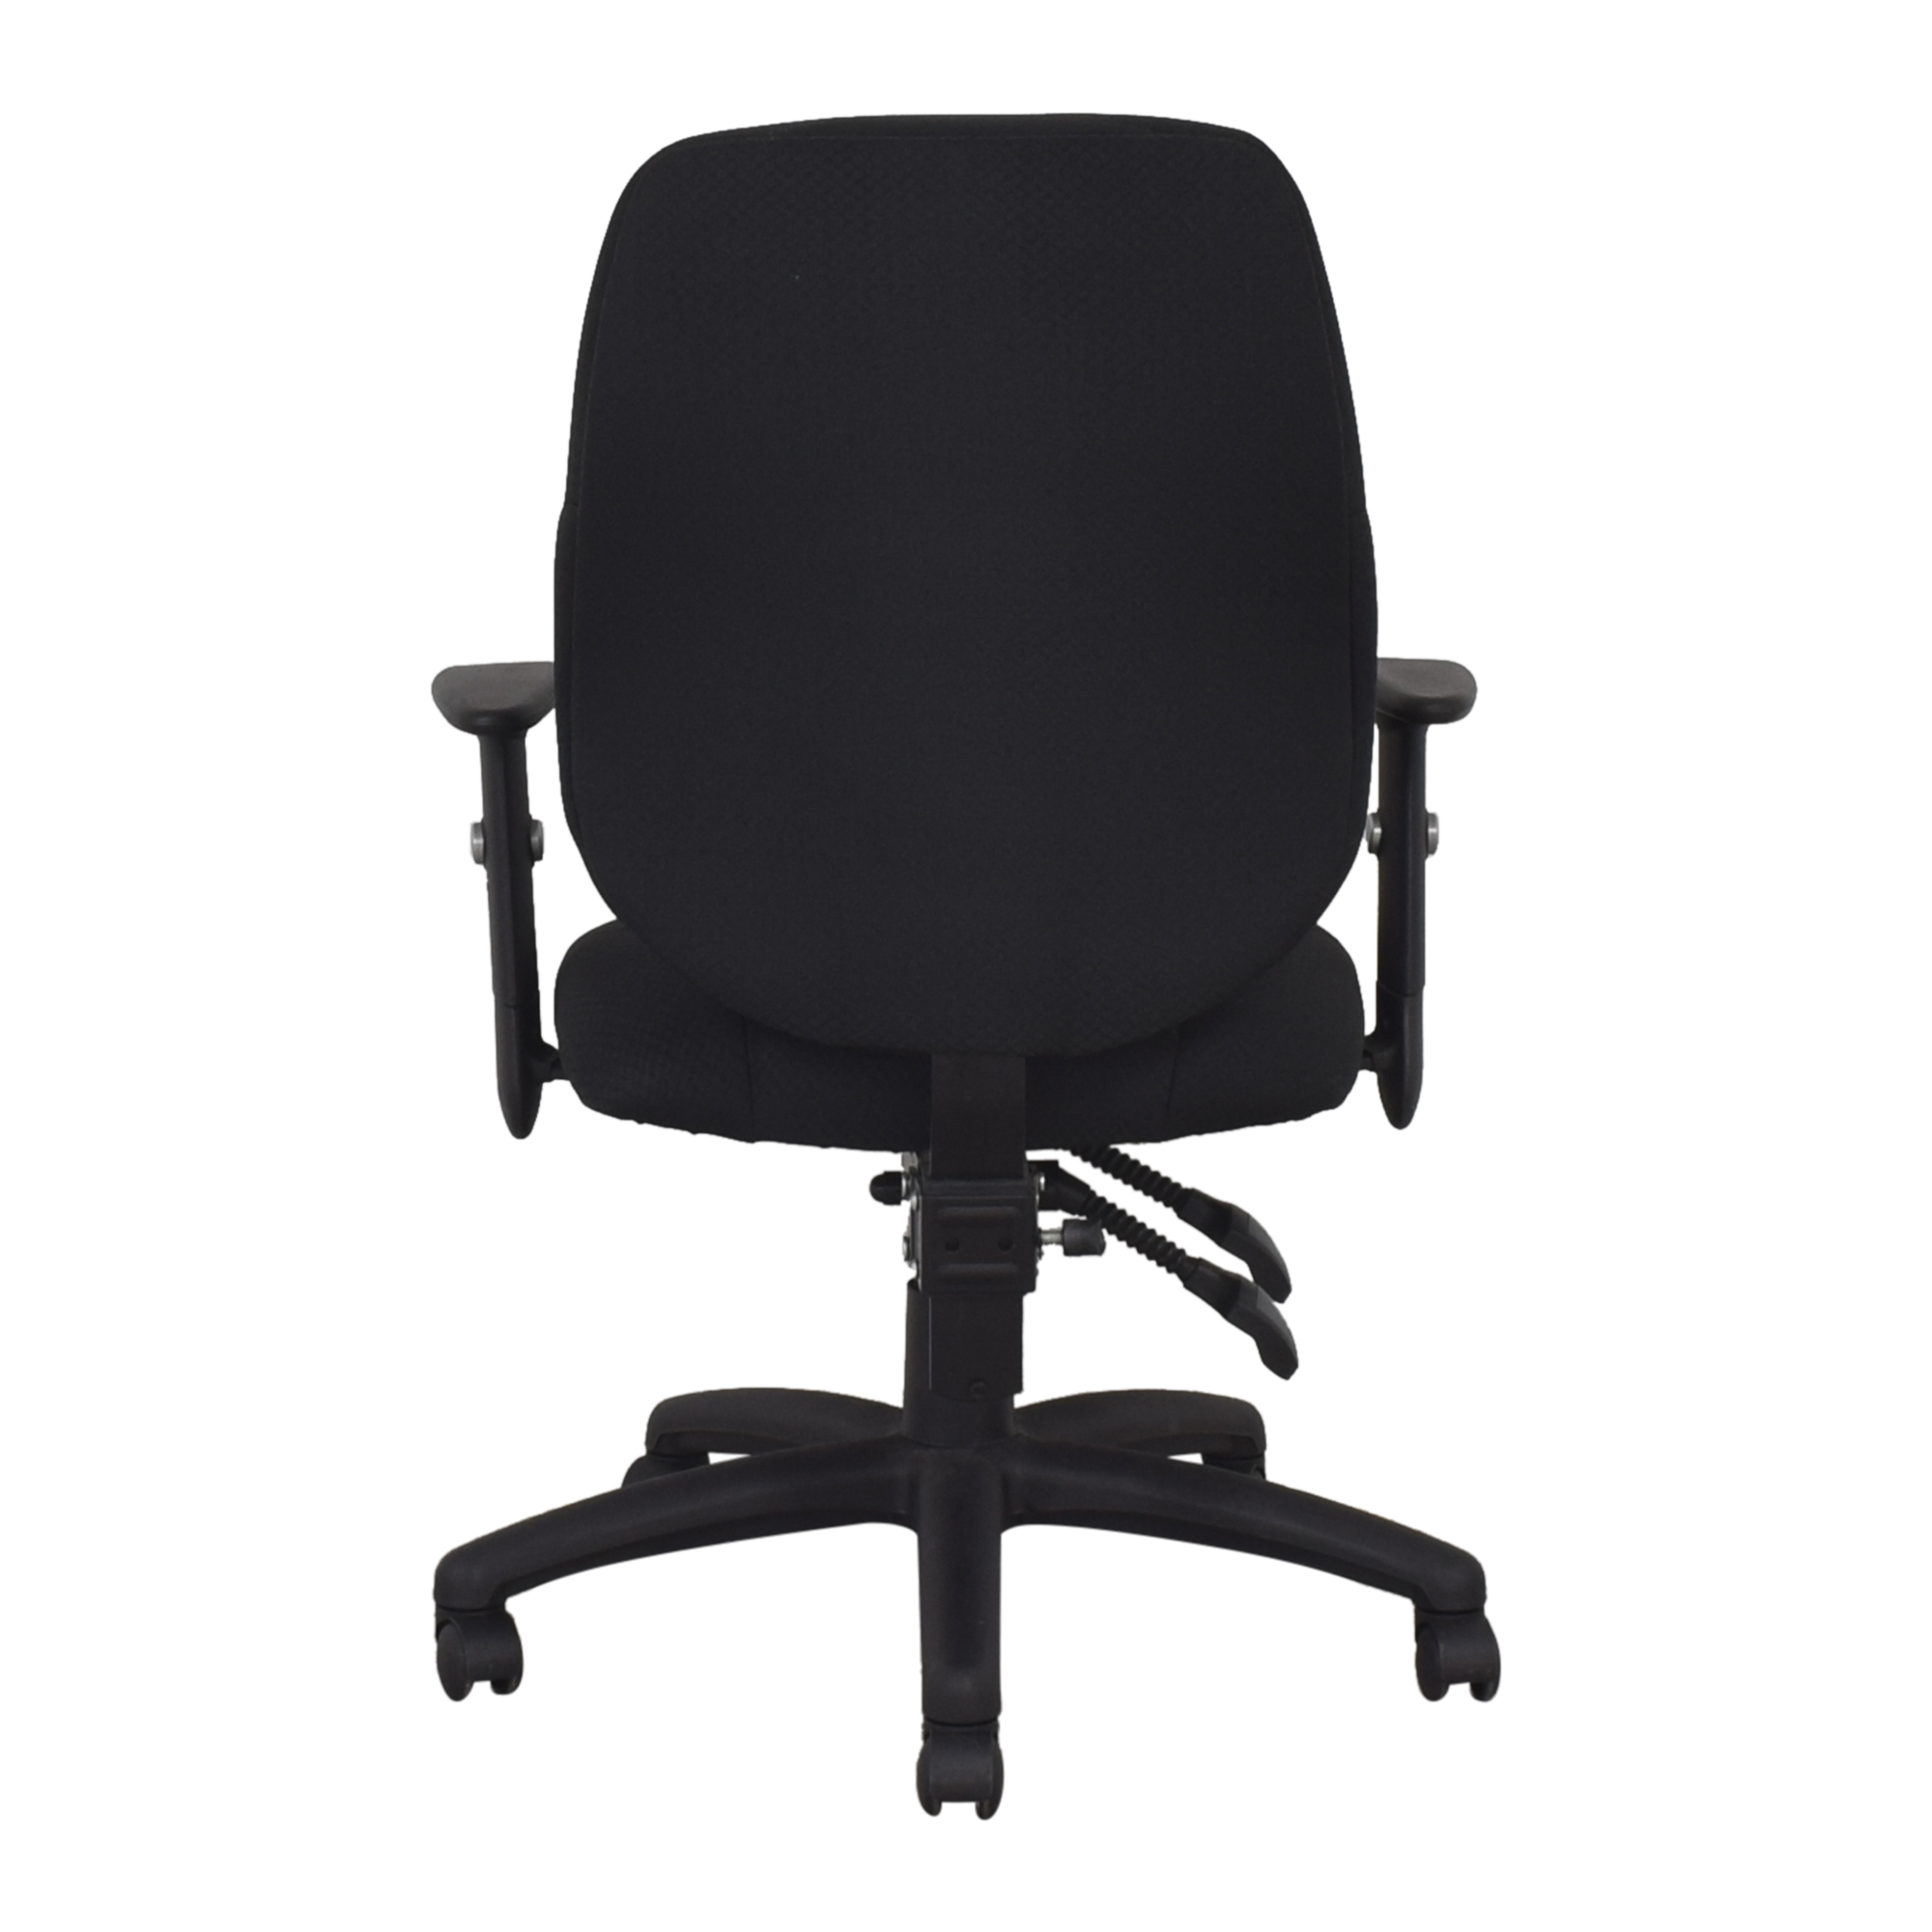 shop Offices to Go Adjustable Office Chair Offices to Go Home Office Chairs